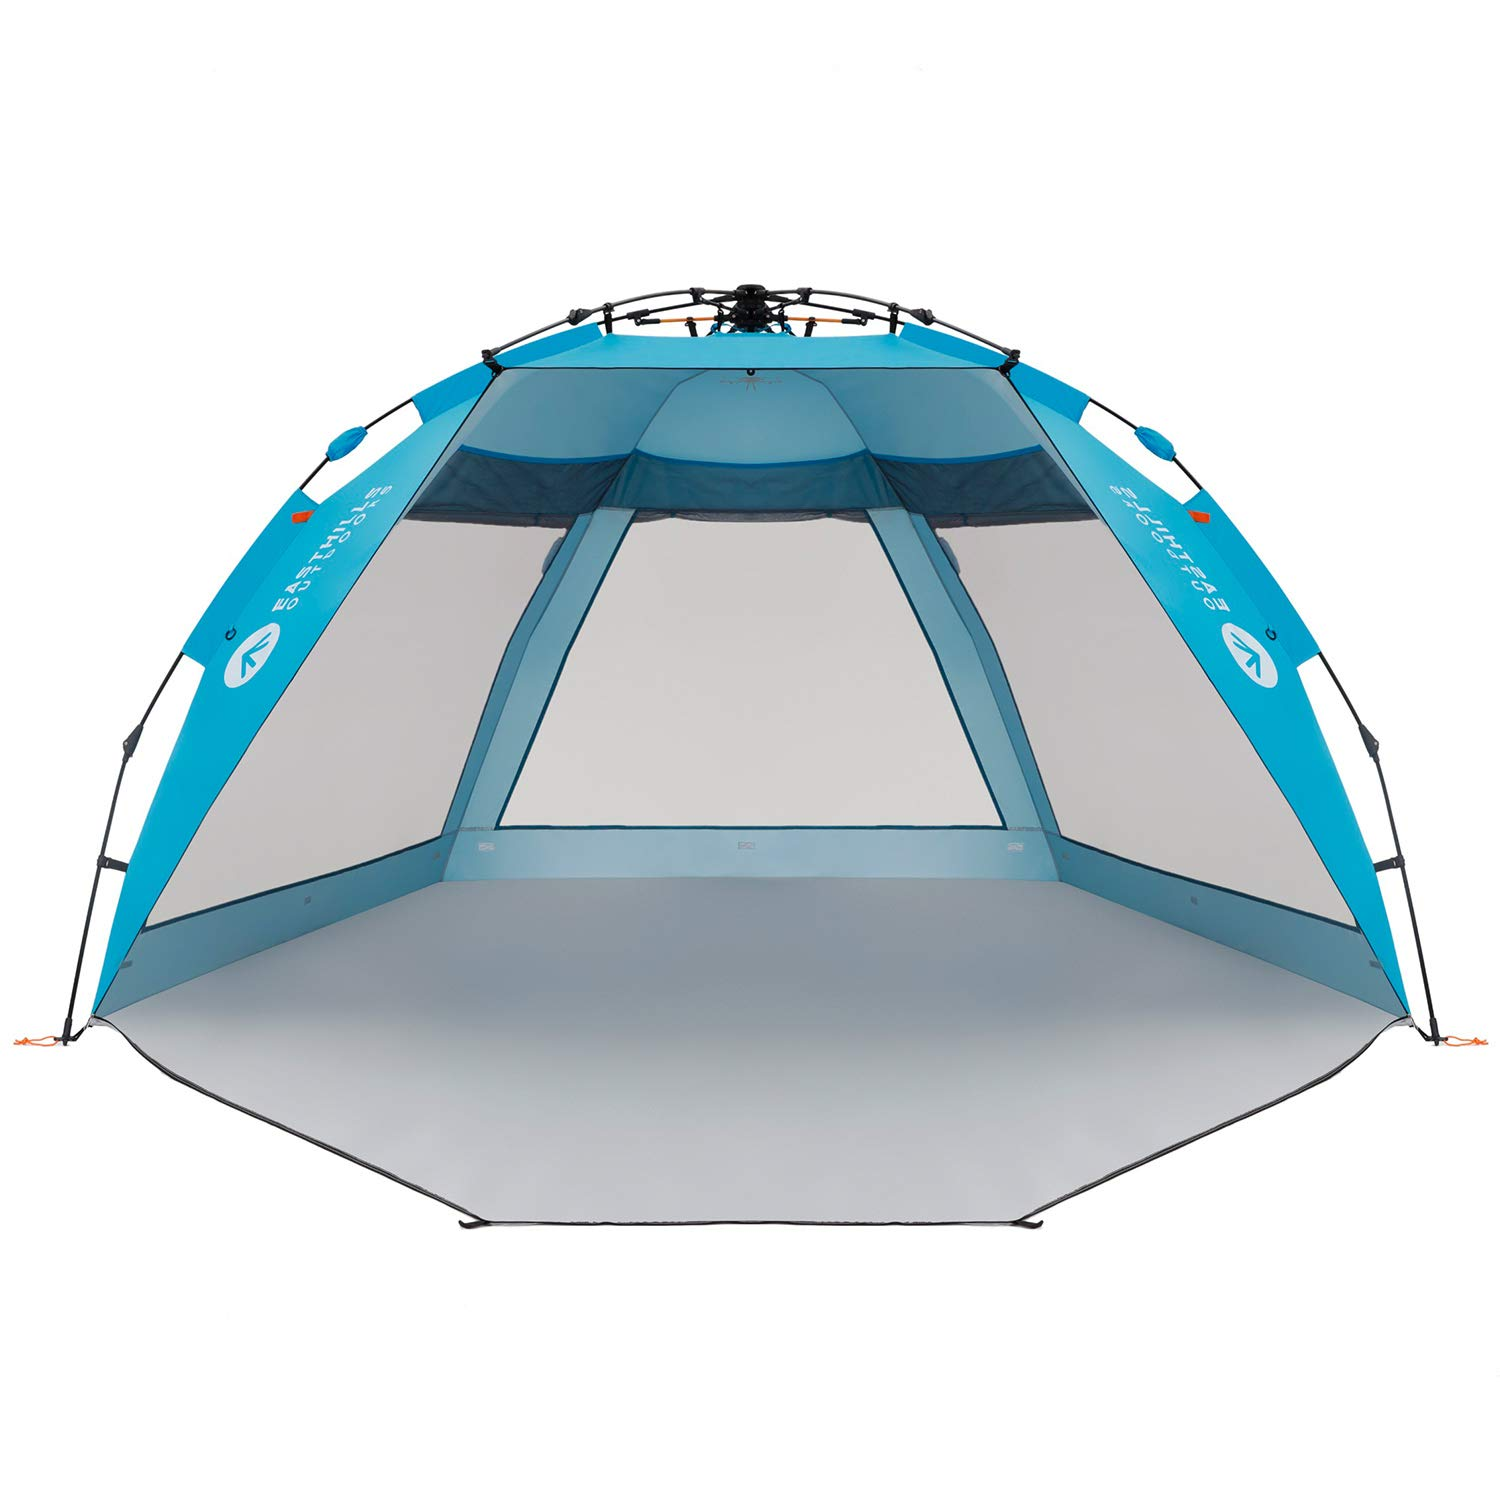 Easthills Outdoors Coastview Ultra 4-5 Person Family Sun Shelter Ultra Large Quick Setup Instant Anti UV Double Silver Coating Beach Tent with Extended Door & Window Pacific Blue by Easthills Outdoors